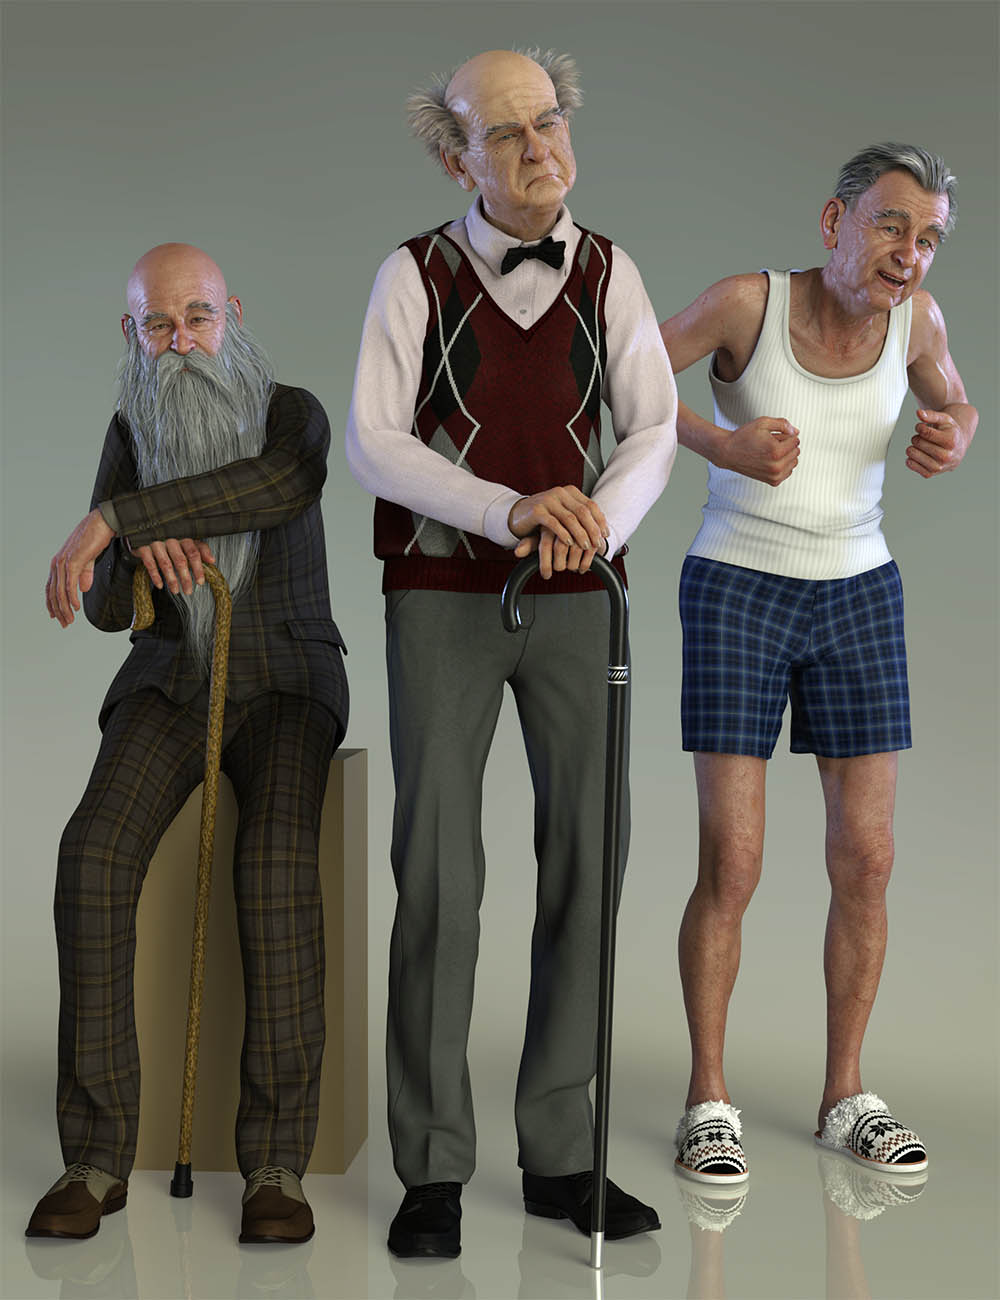 Old Man Poses and Walking Cane for Floyd 8 by: Capsces Digital Ink, 3D Models by Daz 3D